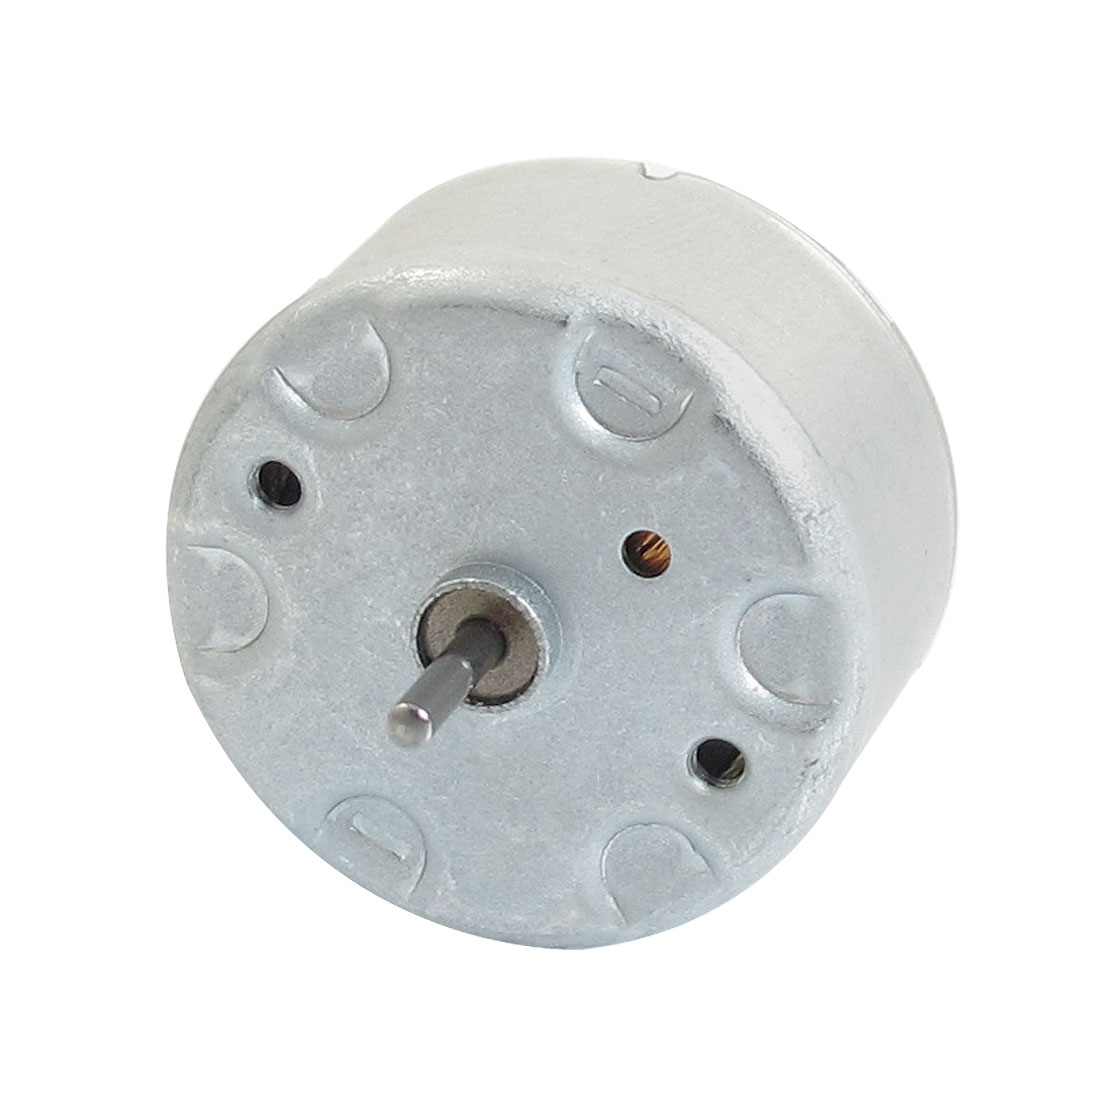 2700RPM 0.02A 4000RPM 0.023A 6V High Torque Electric Mini DC Motor